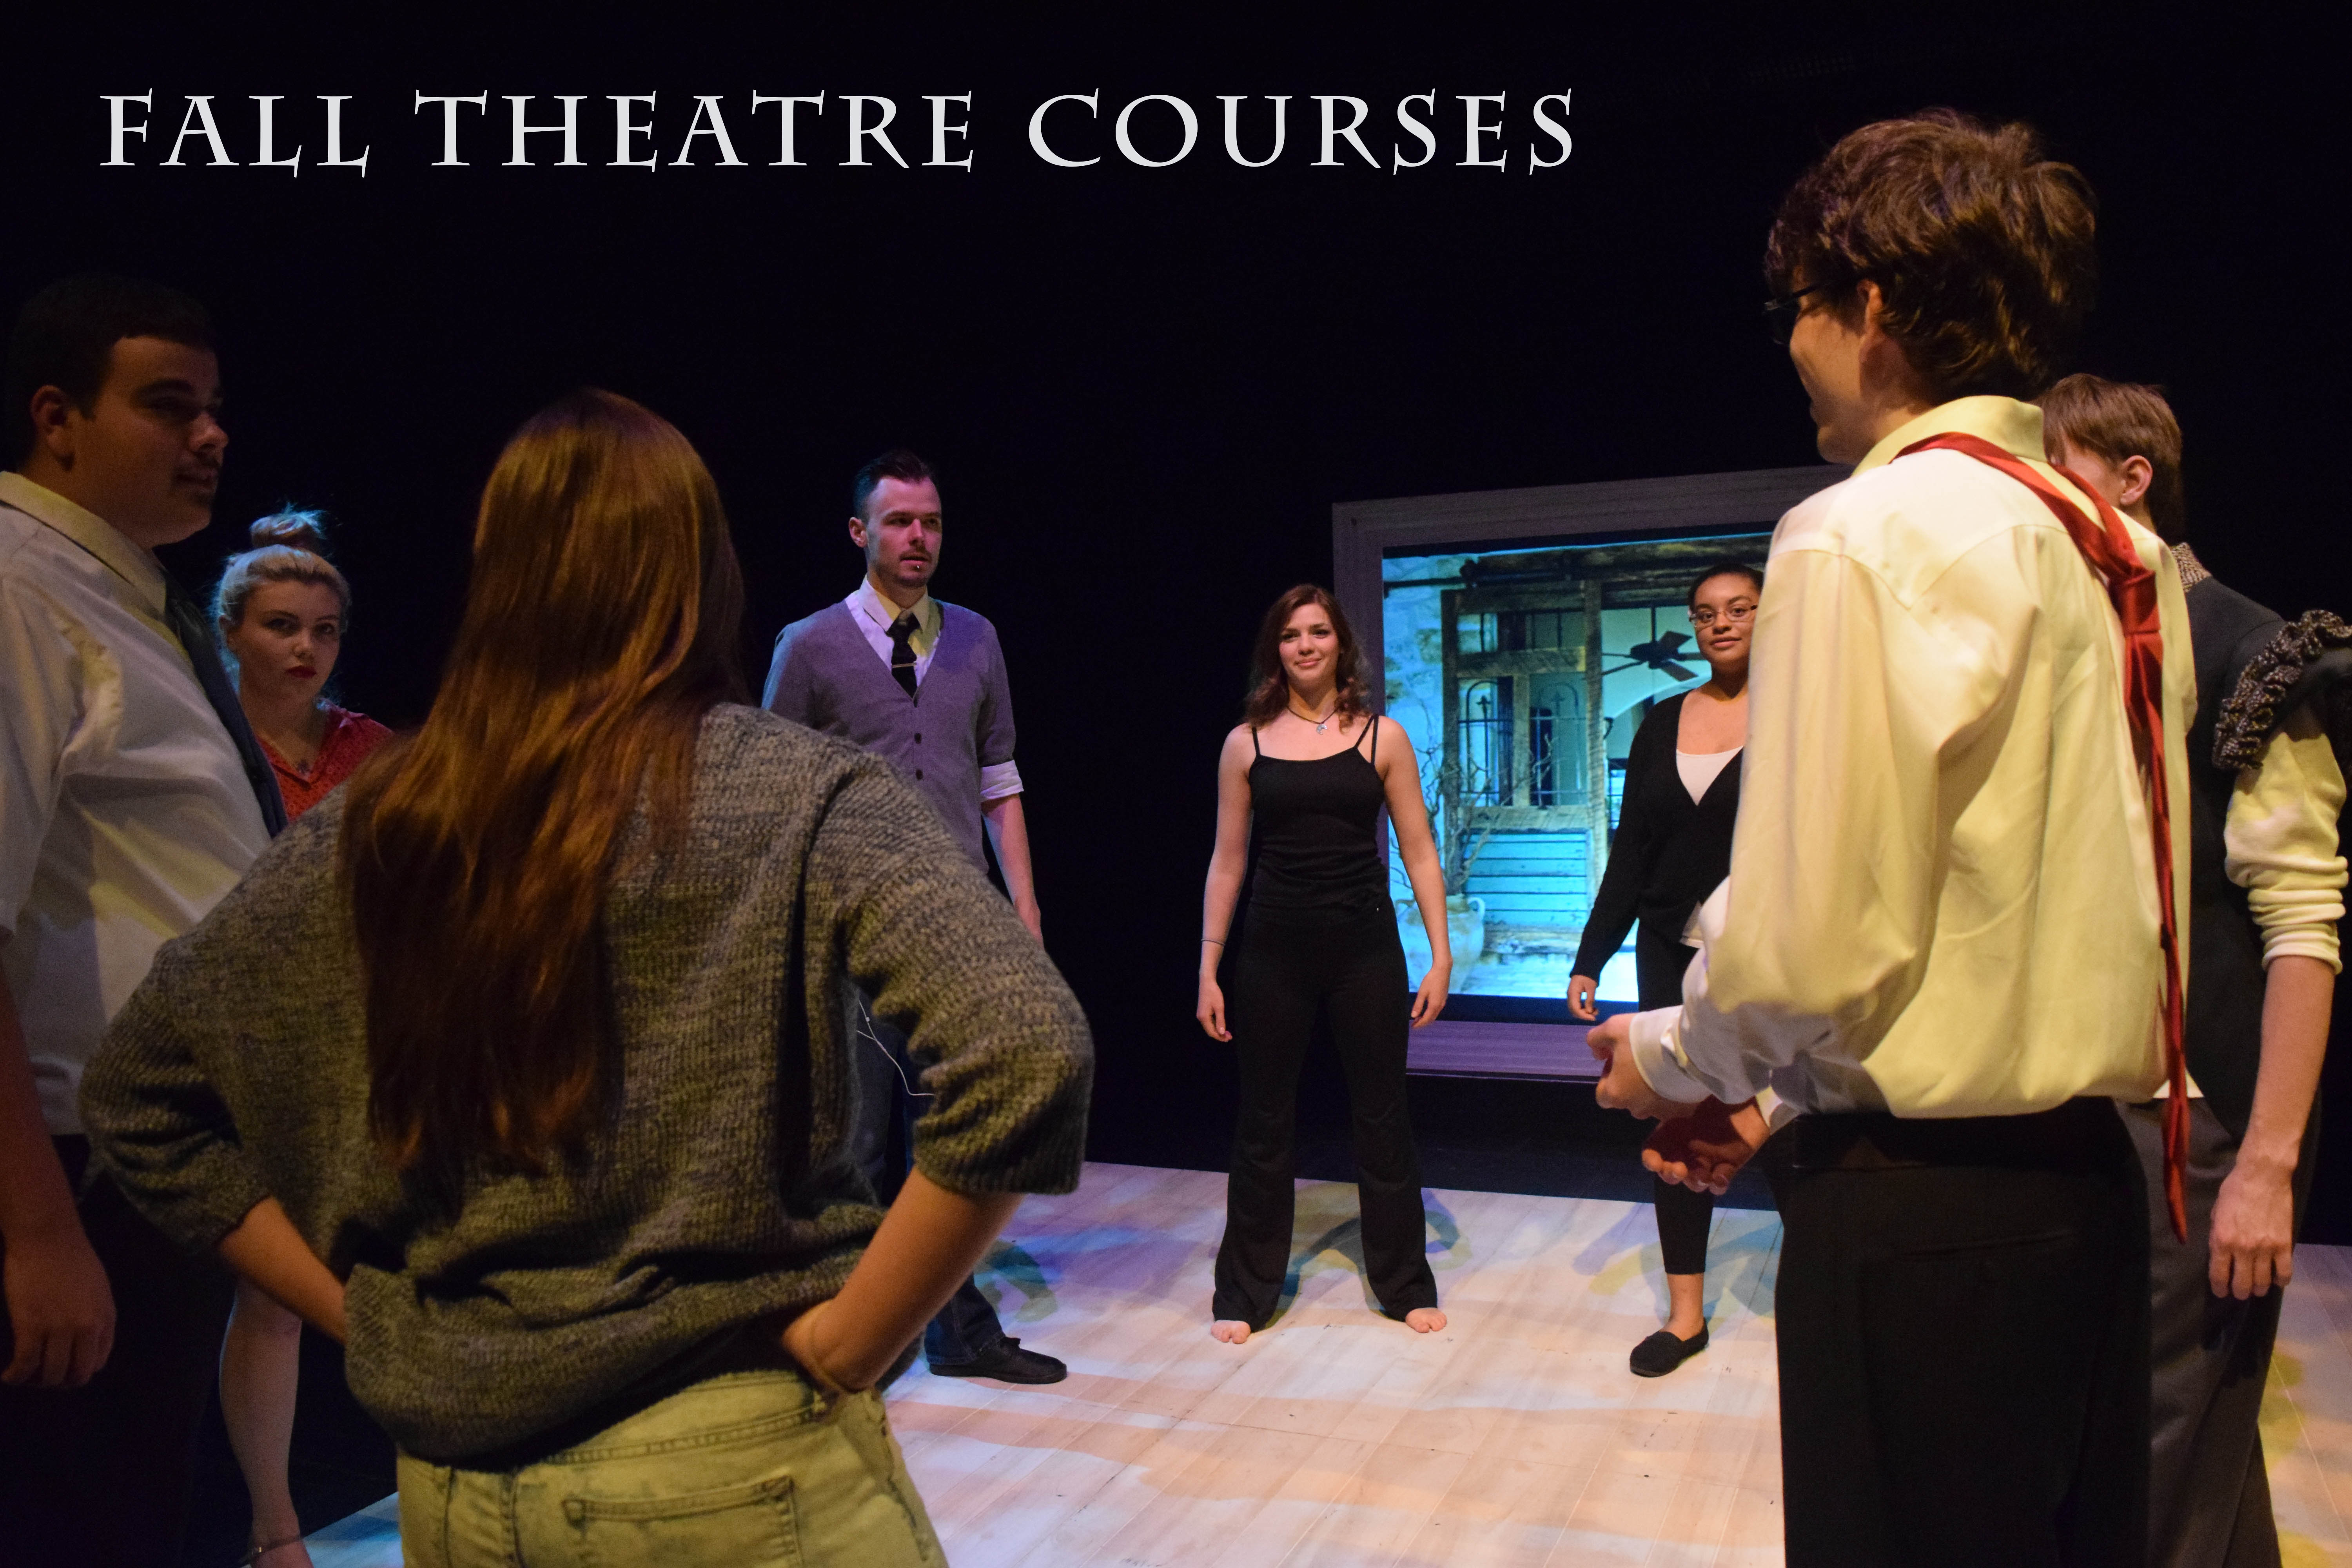 University of Akron Theatre Fall Courses